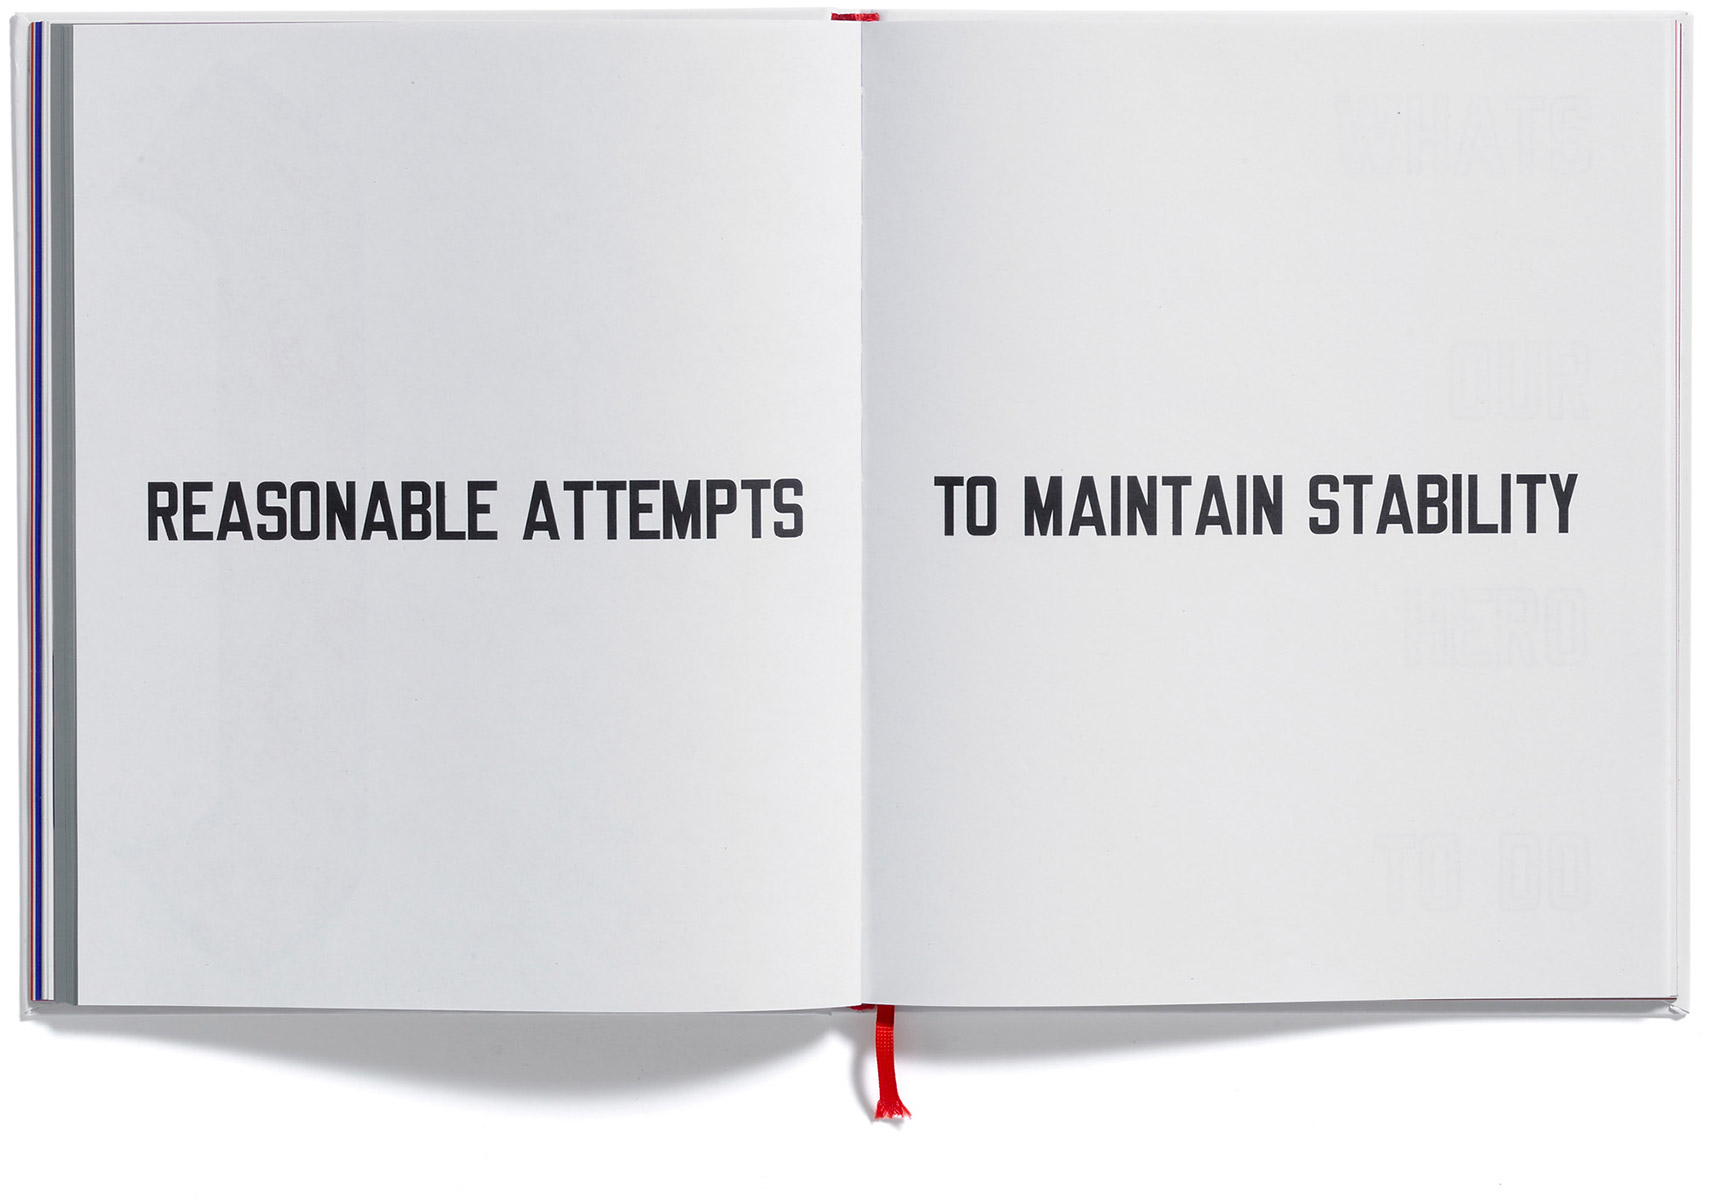 Browns Editions, Browns Editions Publishing, Browns Editions Books, Browns Editions Lawrence Weiner, Browns Editions HSP Lecture Series 4, Browns Editions Lawrence Weiner HSP Lecture Series 4